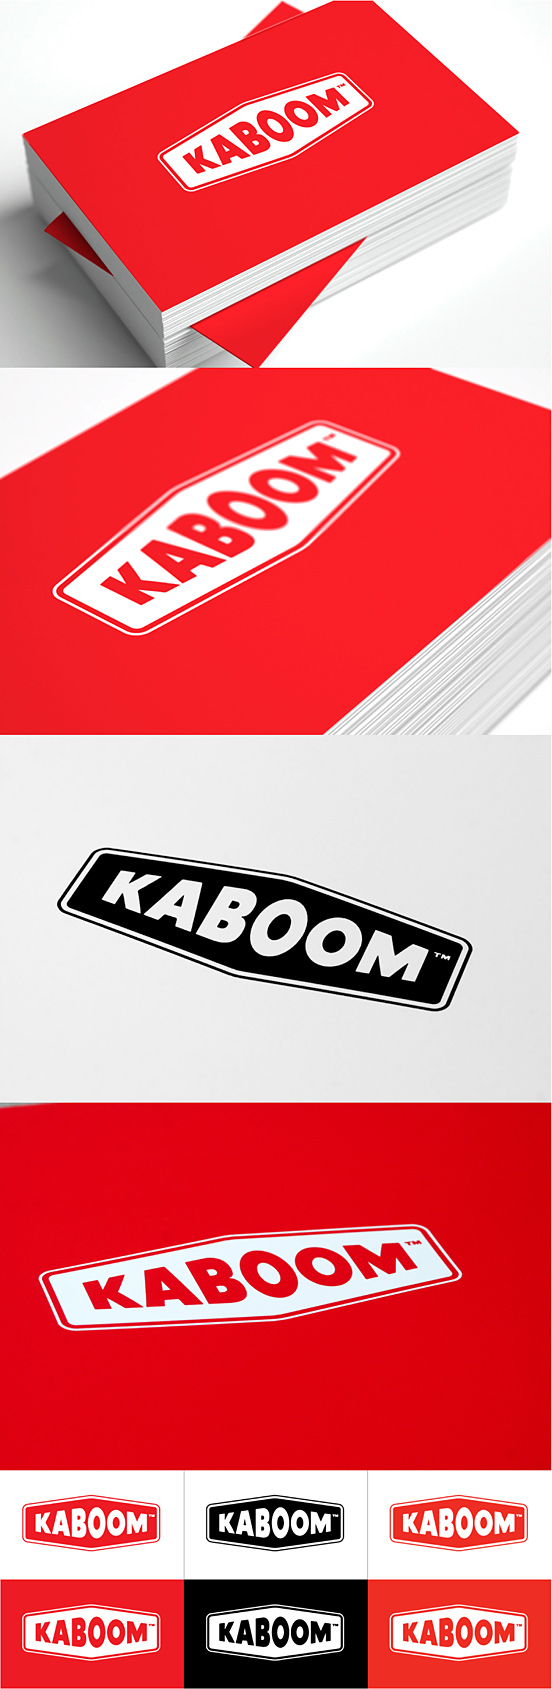 Kaboom Business Cards